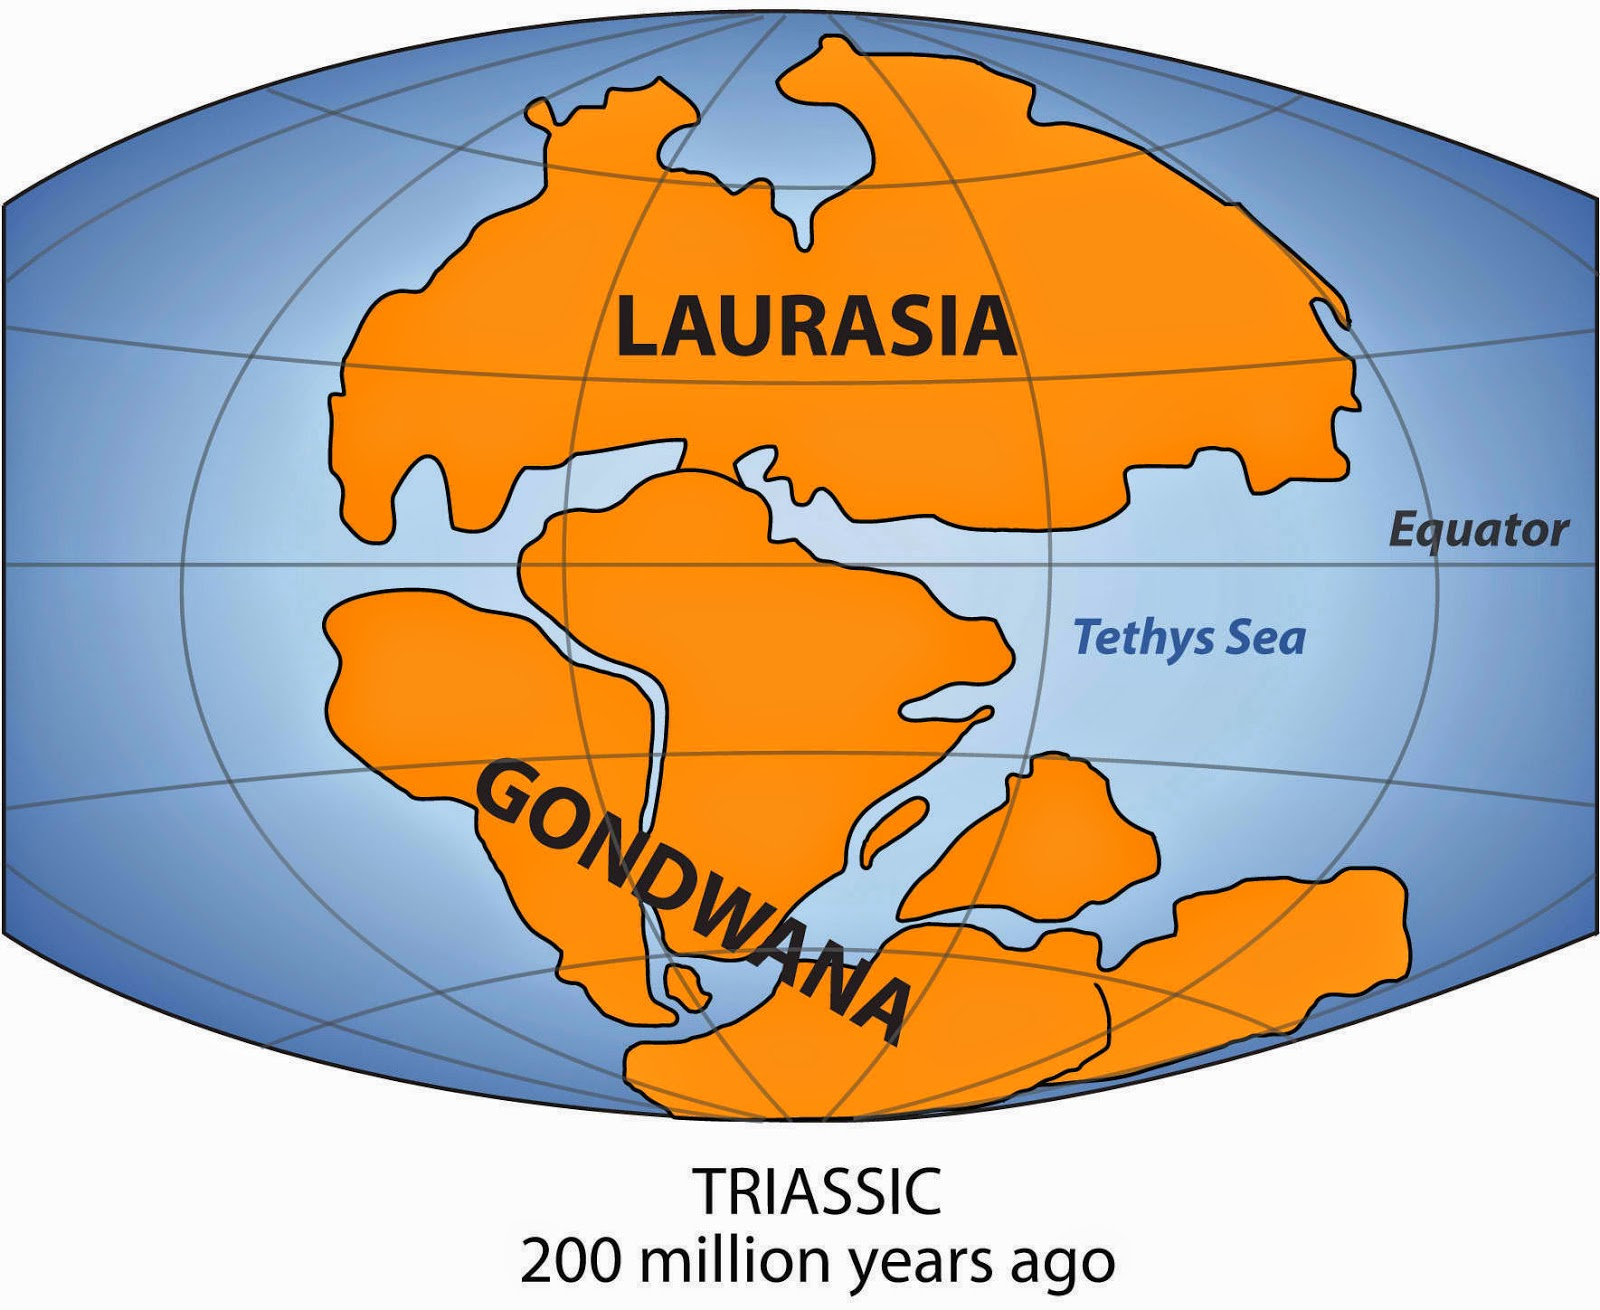 Gondwana during the Triassic period 200 million years ago